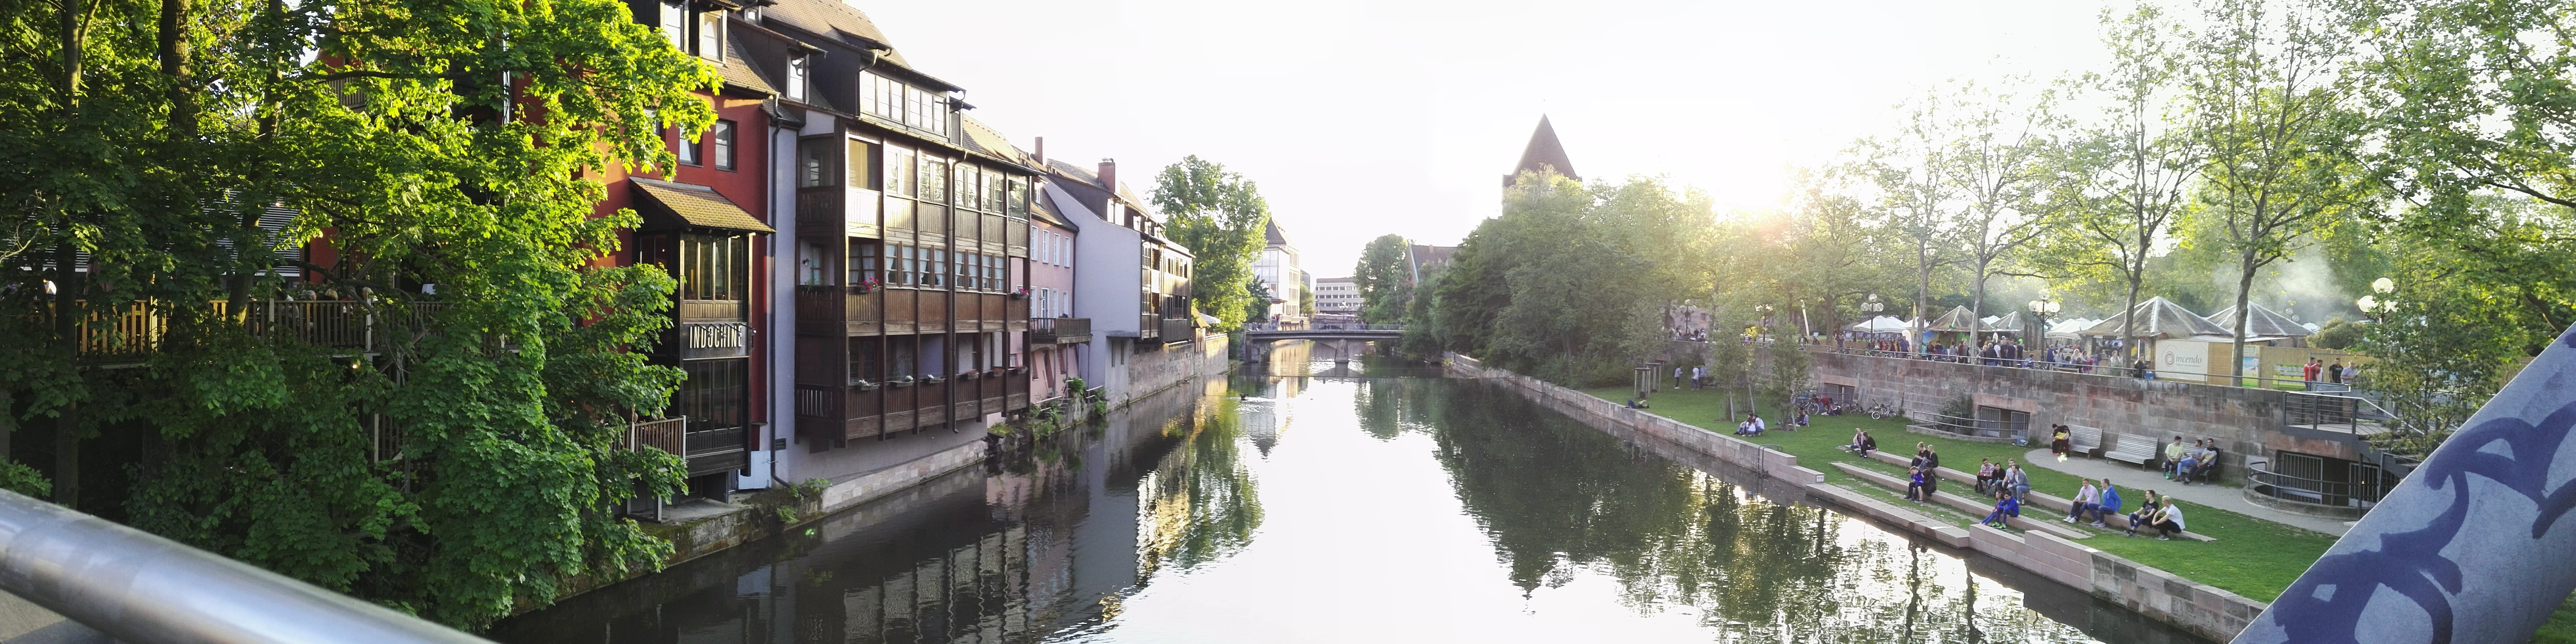 River Pegnitz streaming through the Old Town